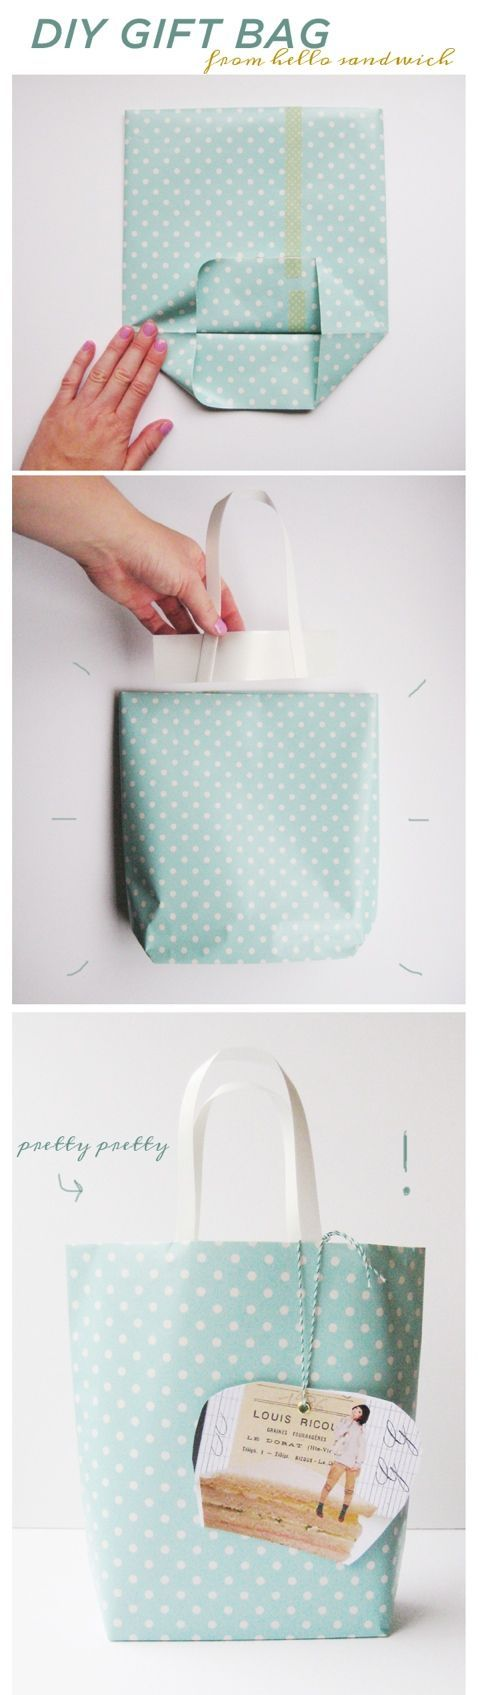 DIY gift #hand made gifts